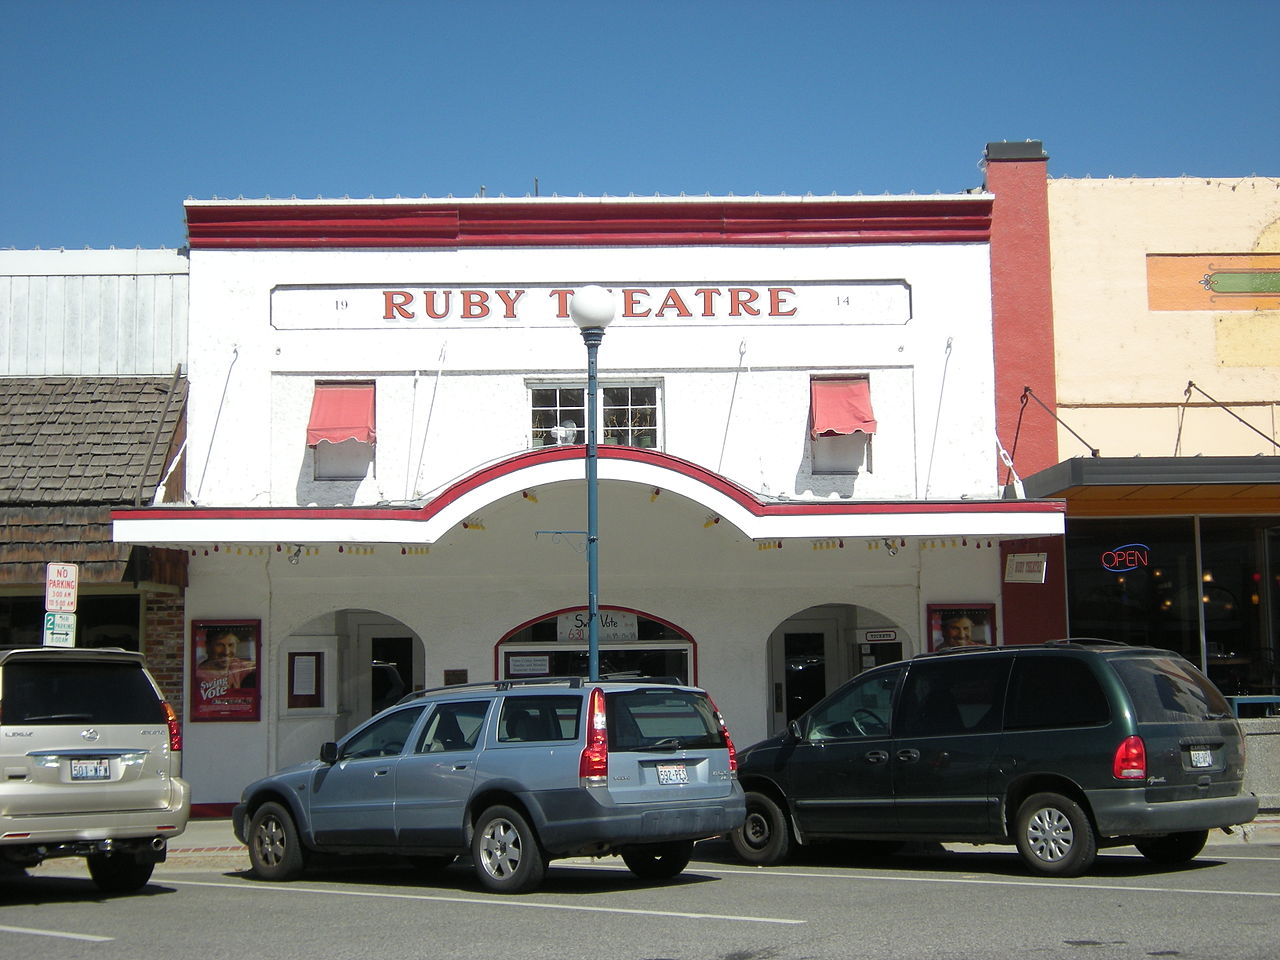 Ruby Theatre was built in 1914 and is listed on the National Register of Historic Places.